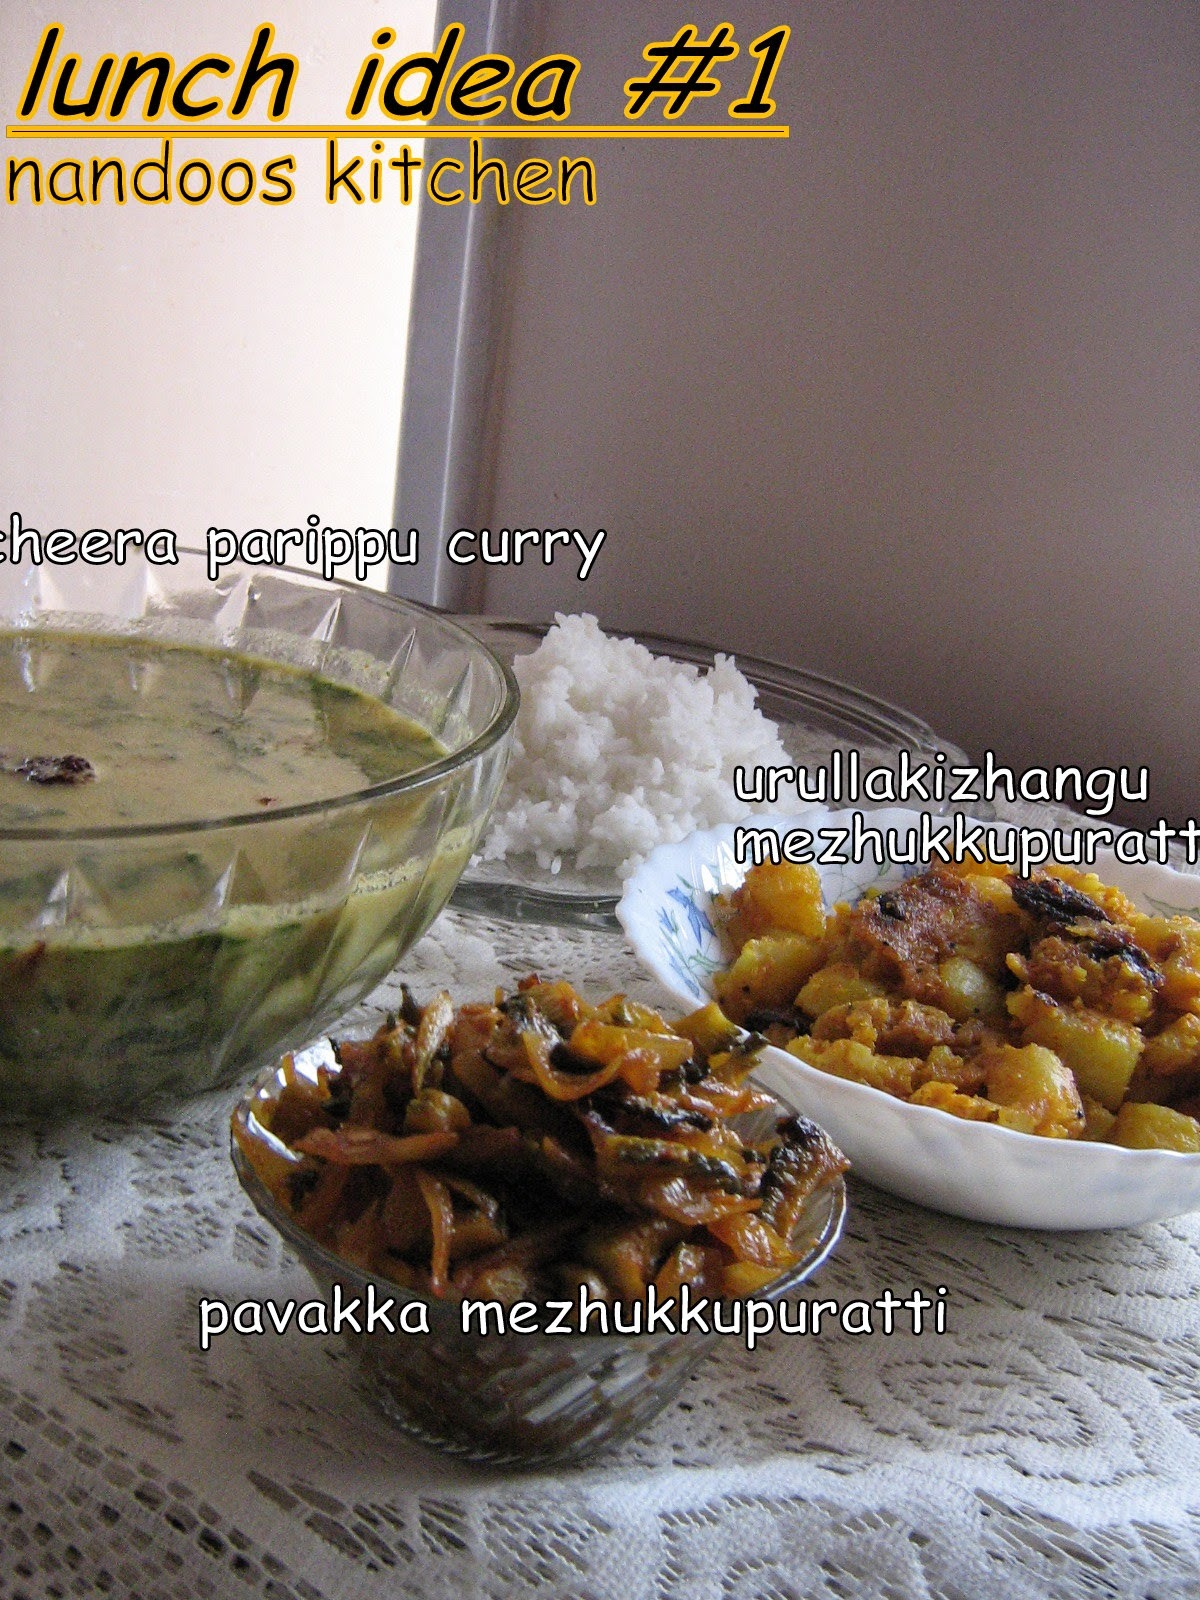 Lunch menu - Easy kerala lunch